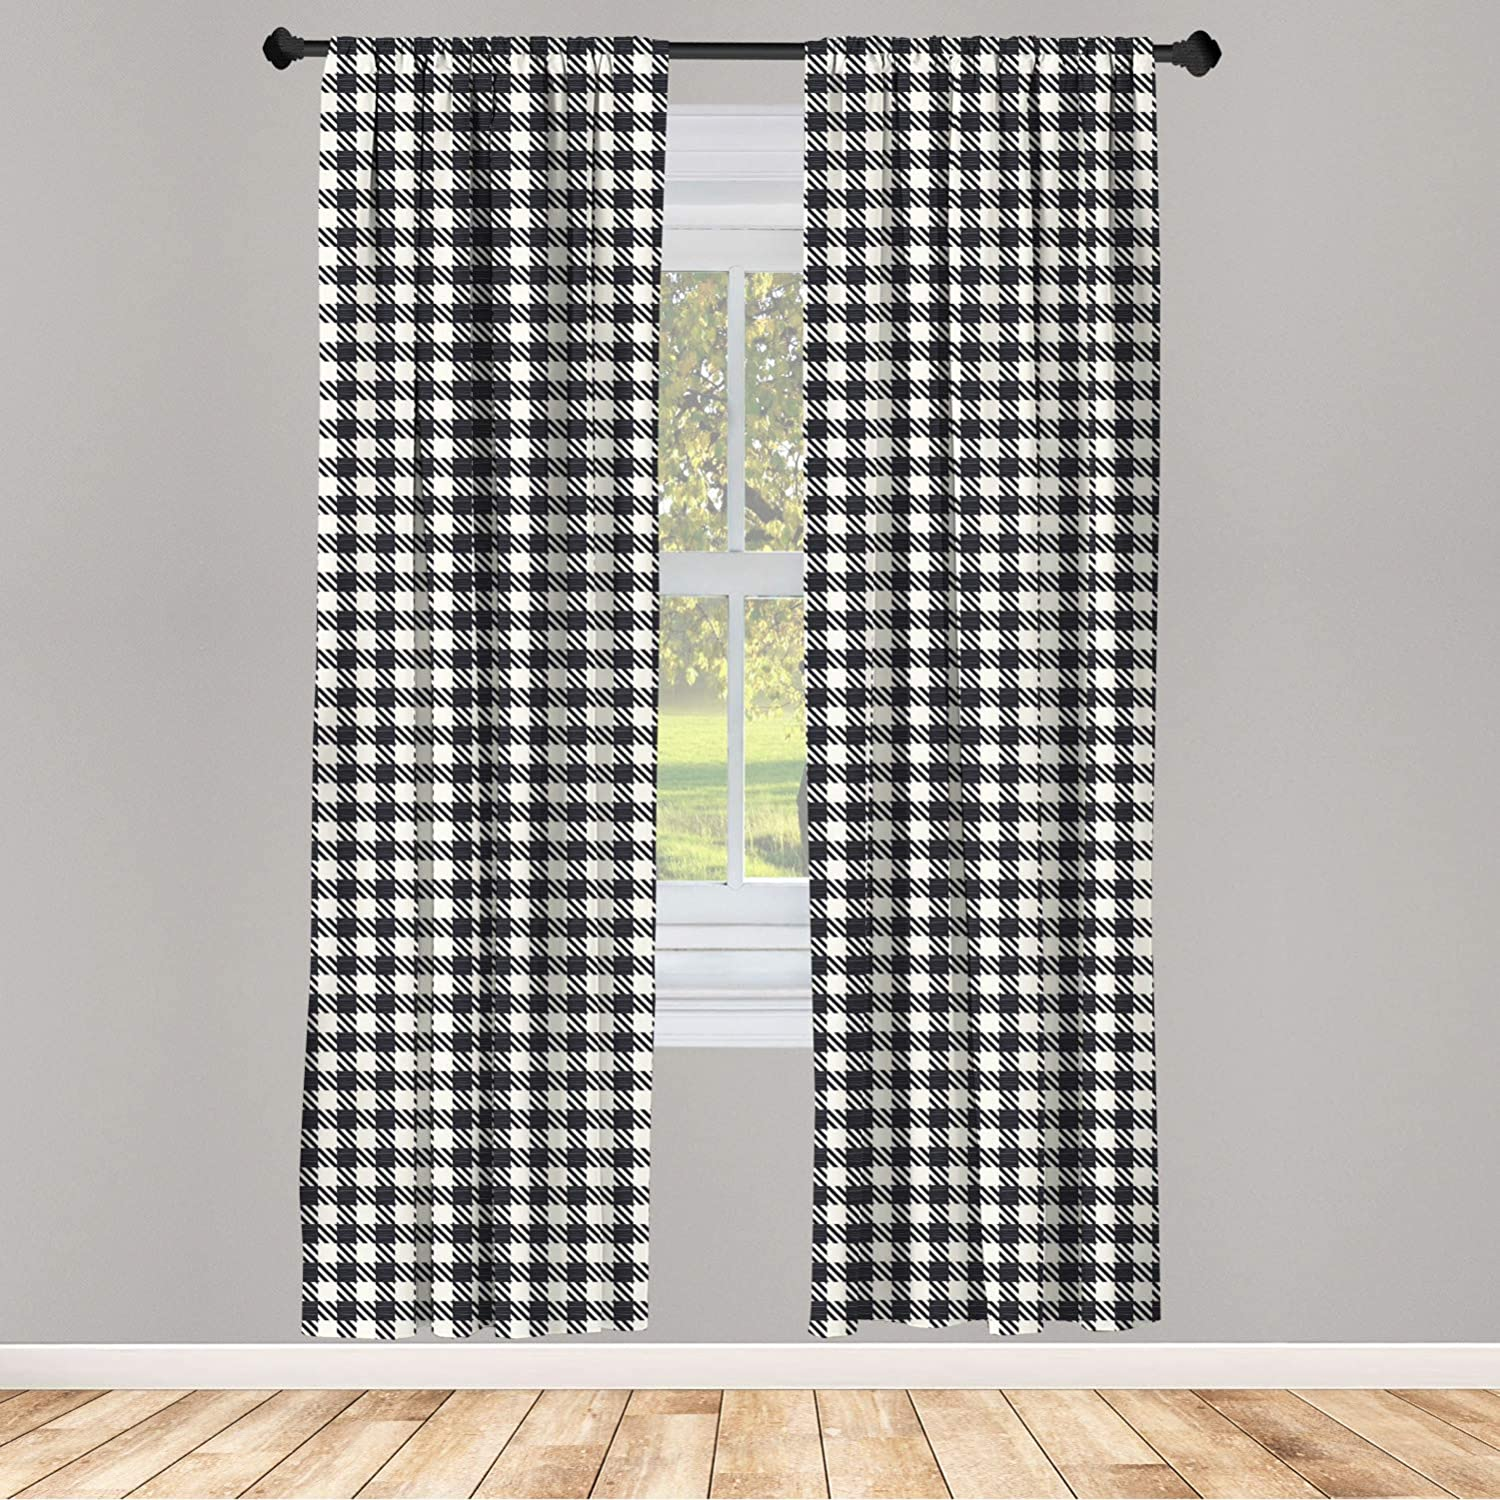 Ambesonne Checkered Curtains, Diagonal Stripes Squares Monochrome Sketchy Geometric Grid Revival Tile, Window Treatments 2 Panel Set for Living Room Bedroom Decor, 56